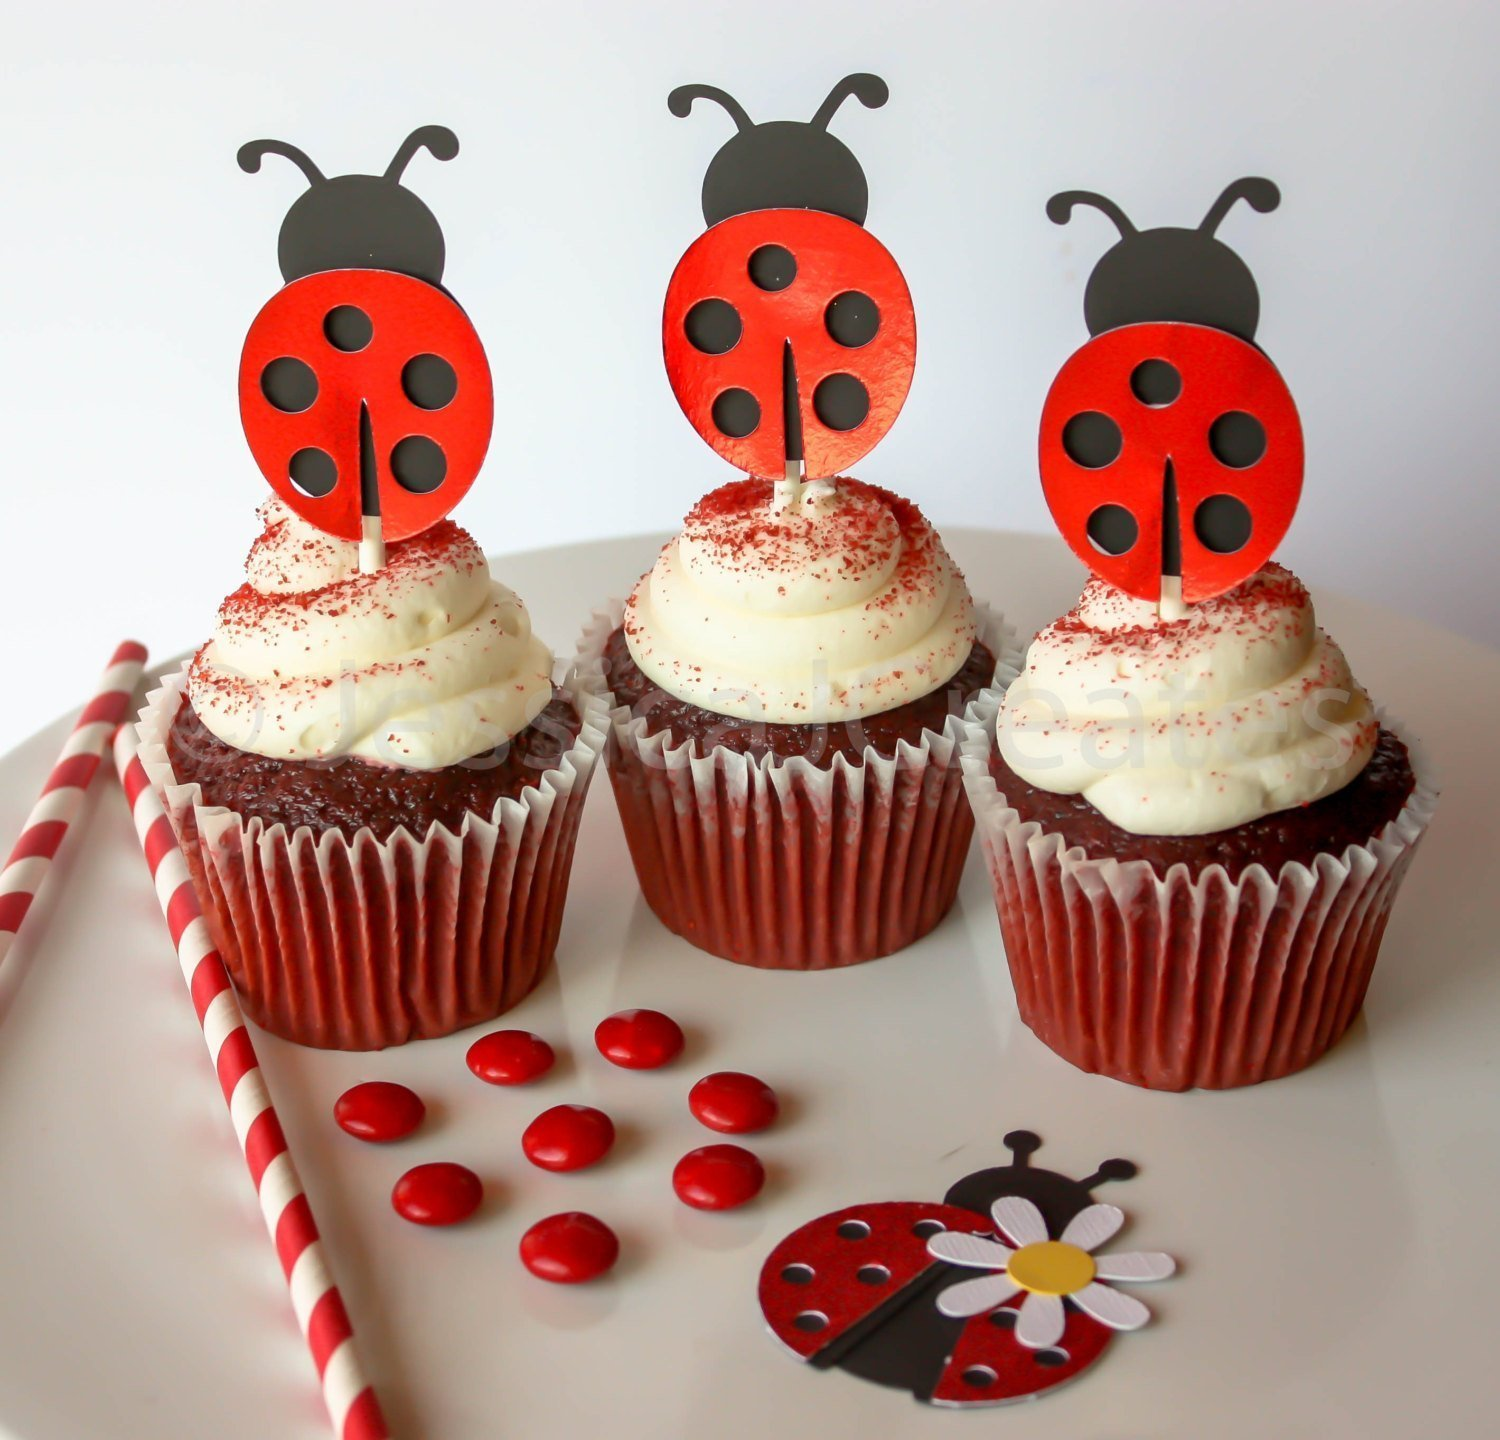 Ladybug Cupcake Toppers - Cupcake Toppers - Red Foiled Cupcake Toppers - Red Ladybugs - 12 ct